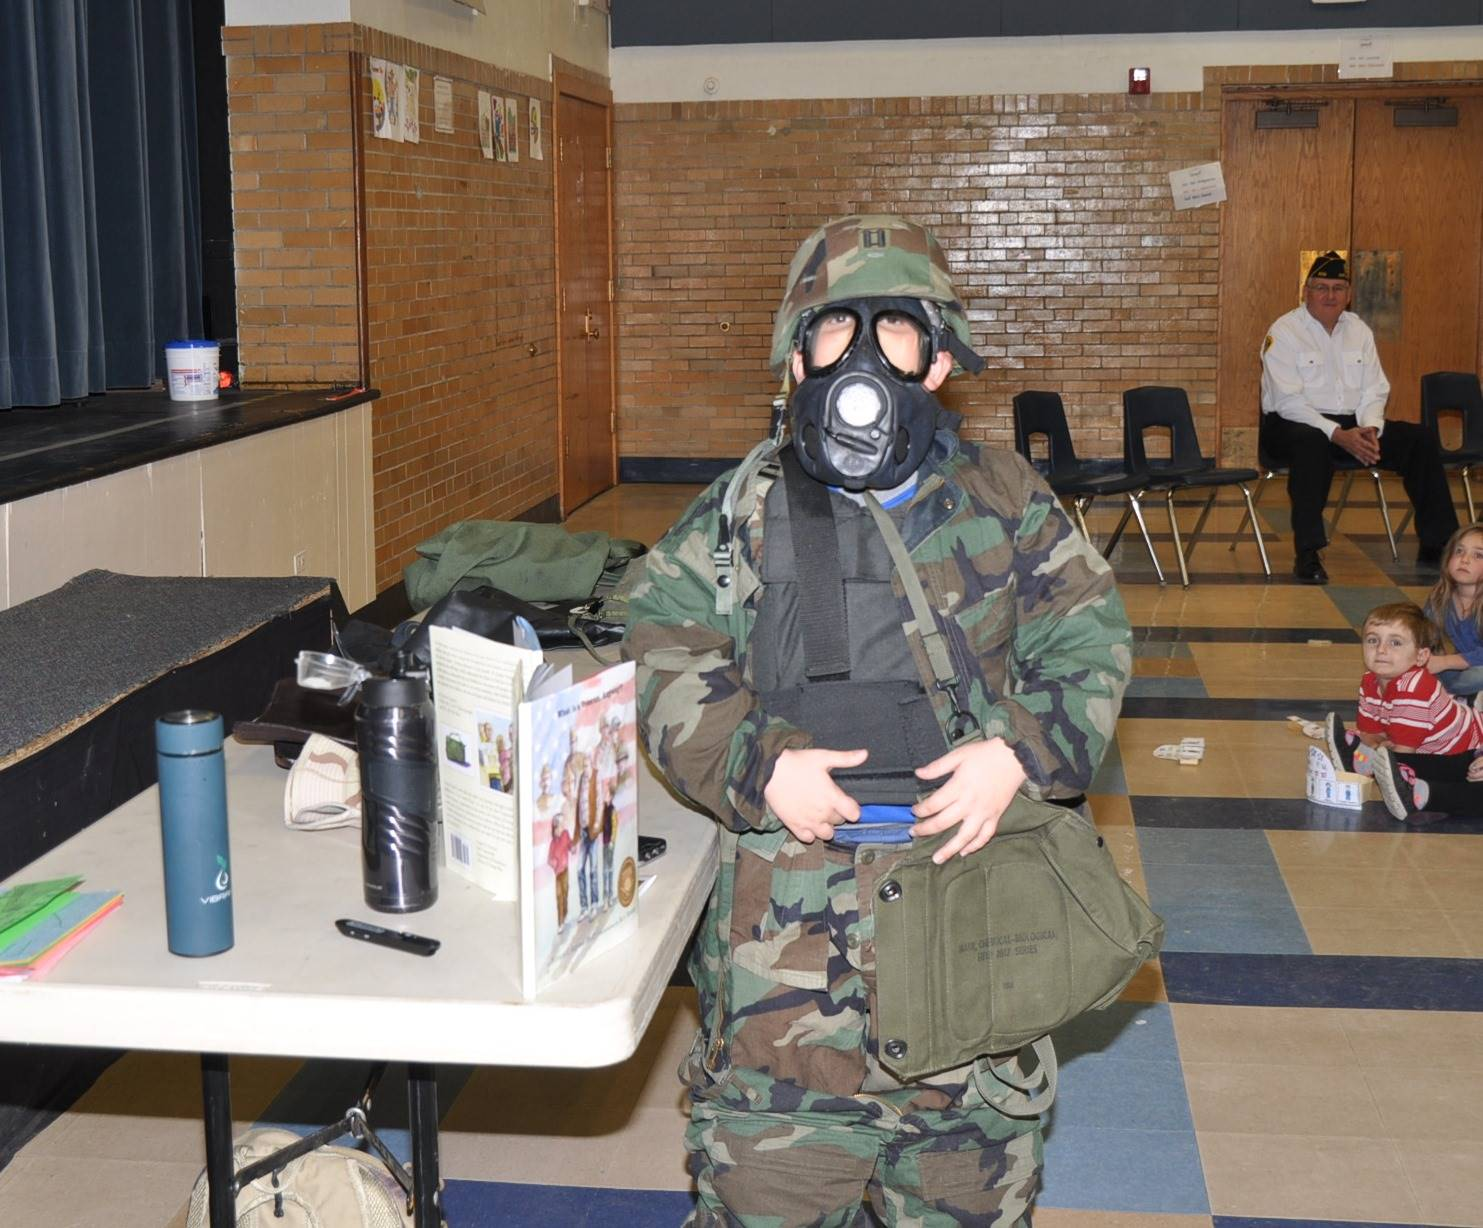 Student in Protective Gear